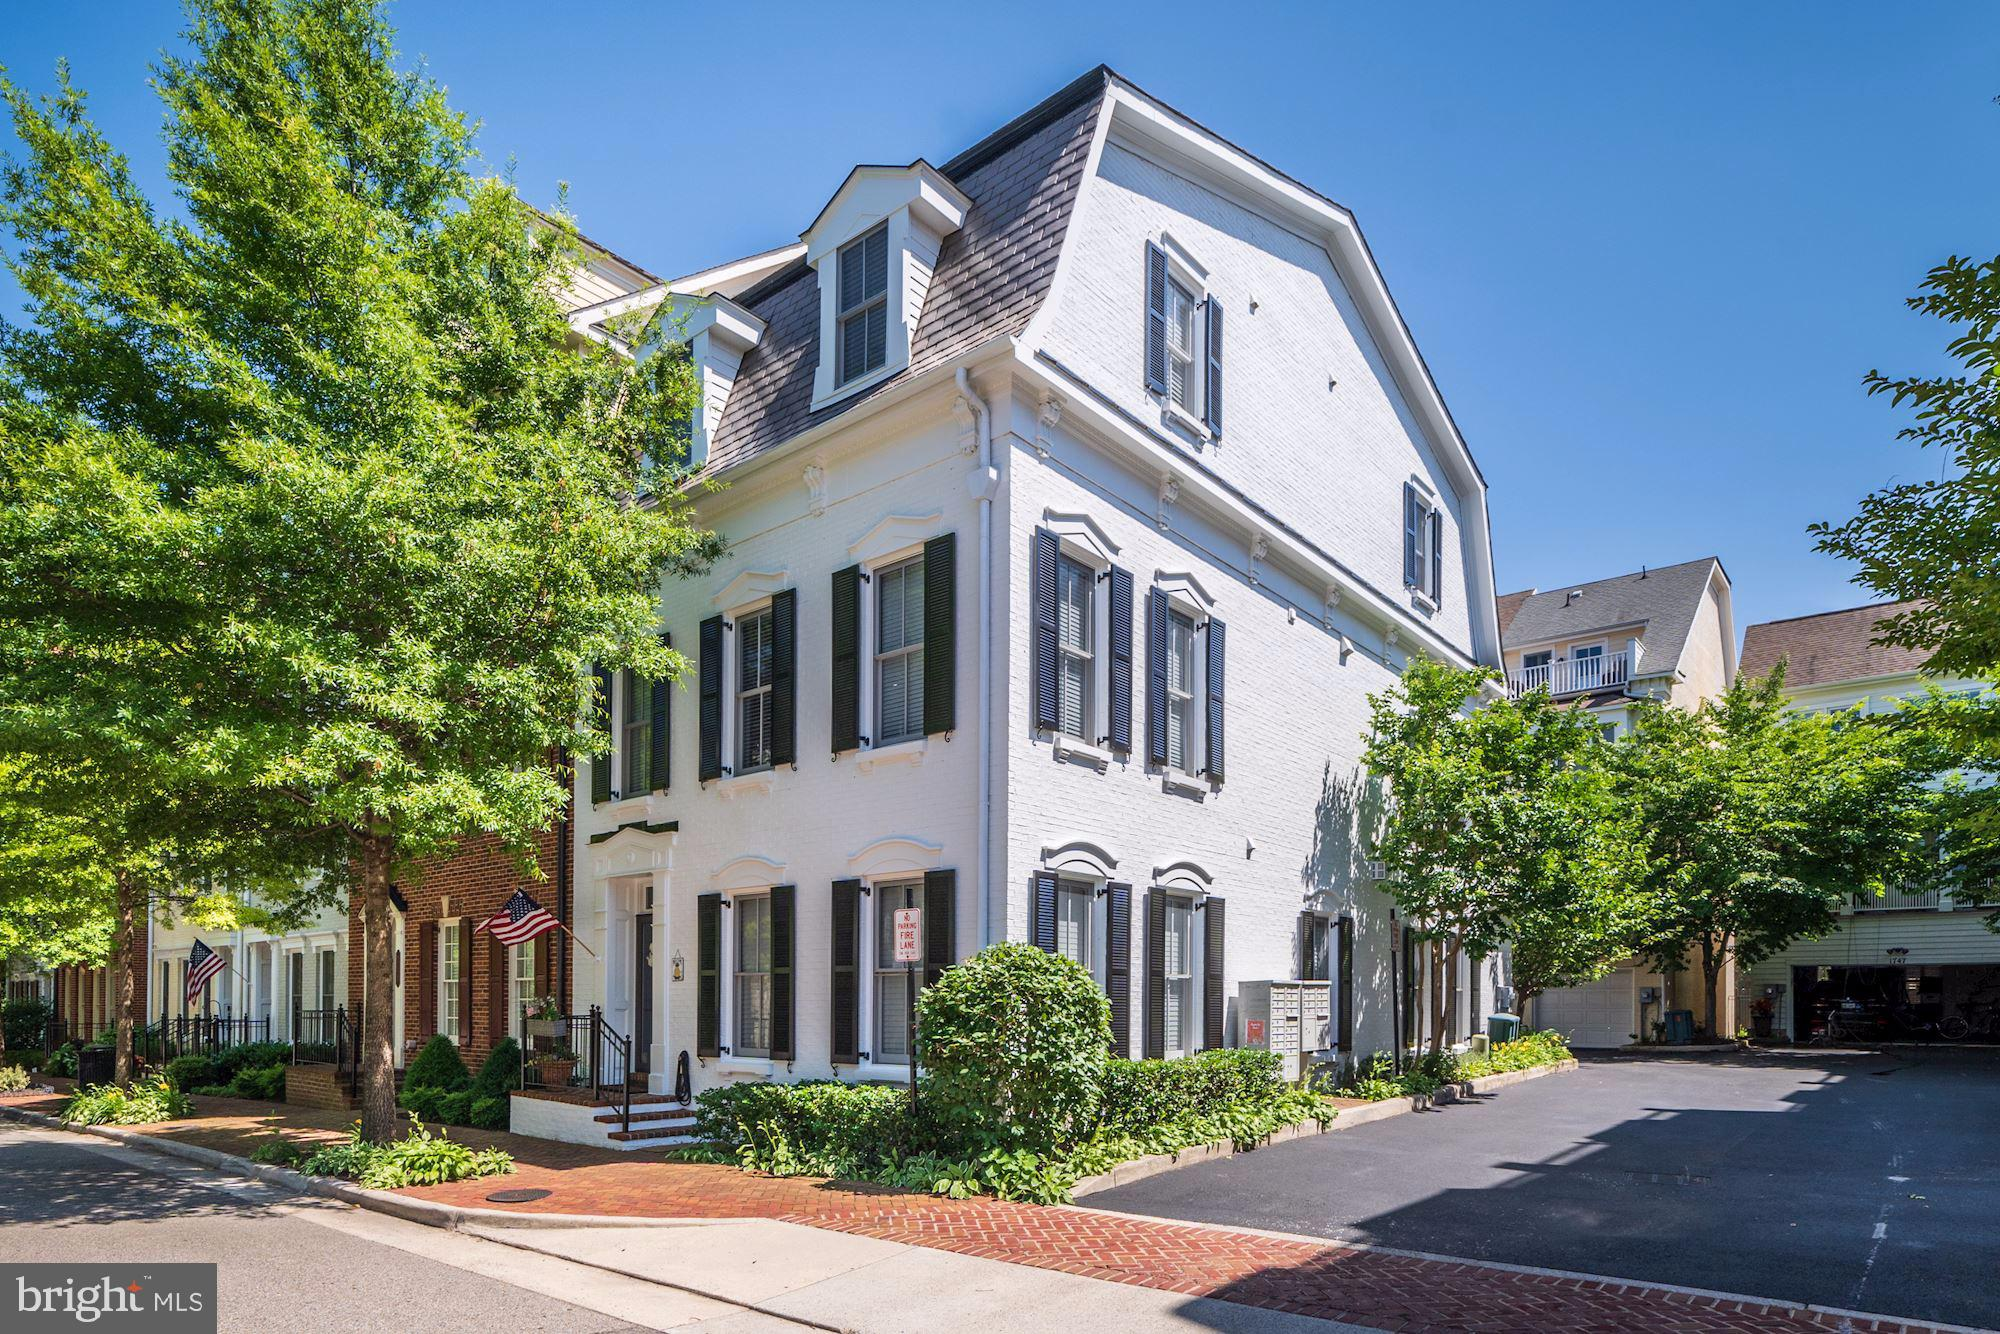 Rarely available Jackson Model 3-level, sun-drenched, end townhome in sought after Potomac Greens!  Located between the heart of Old Town Alexandria and Amazon HQ2 at National Landing!  This gorgeous brick, meticulously maintained home has 4 bedrooms, 3.5 bathrooms, and a spacious den with custom built-ins.  This beautiful 3,082 SF home, is fabulous for entertaining, boasts a great layout, tons of windows, brand new carpet in the first floor bedroom and den, gleaming hardwoods, custom built-ins in the family room, custom closet systems in both Master Bedroom closets, complete roof replacement in 2019, freshly painted inside and out, SunSetter awning on large deck-terrace off of the kitchen and family rooms. Two gas fireplaces.  Spacious two car garage with GarageTech work bench and cabinets. Community pool, gym, and party room with low HOA fees.  There are only 7 Jackson Models in Potomac Greens.  It is the most functional floorpan in the community. This home won't last long!